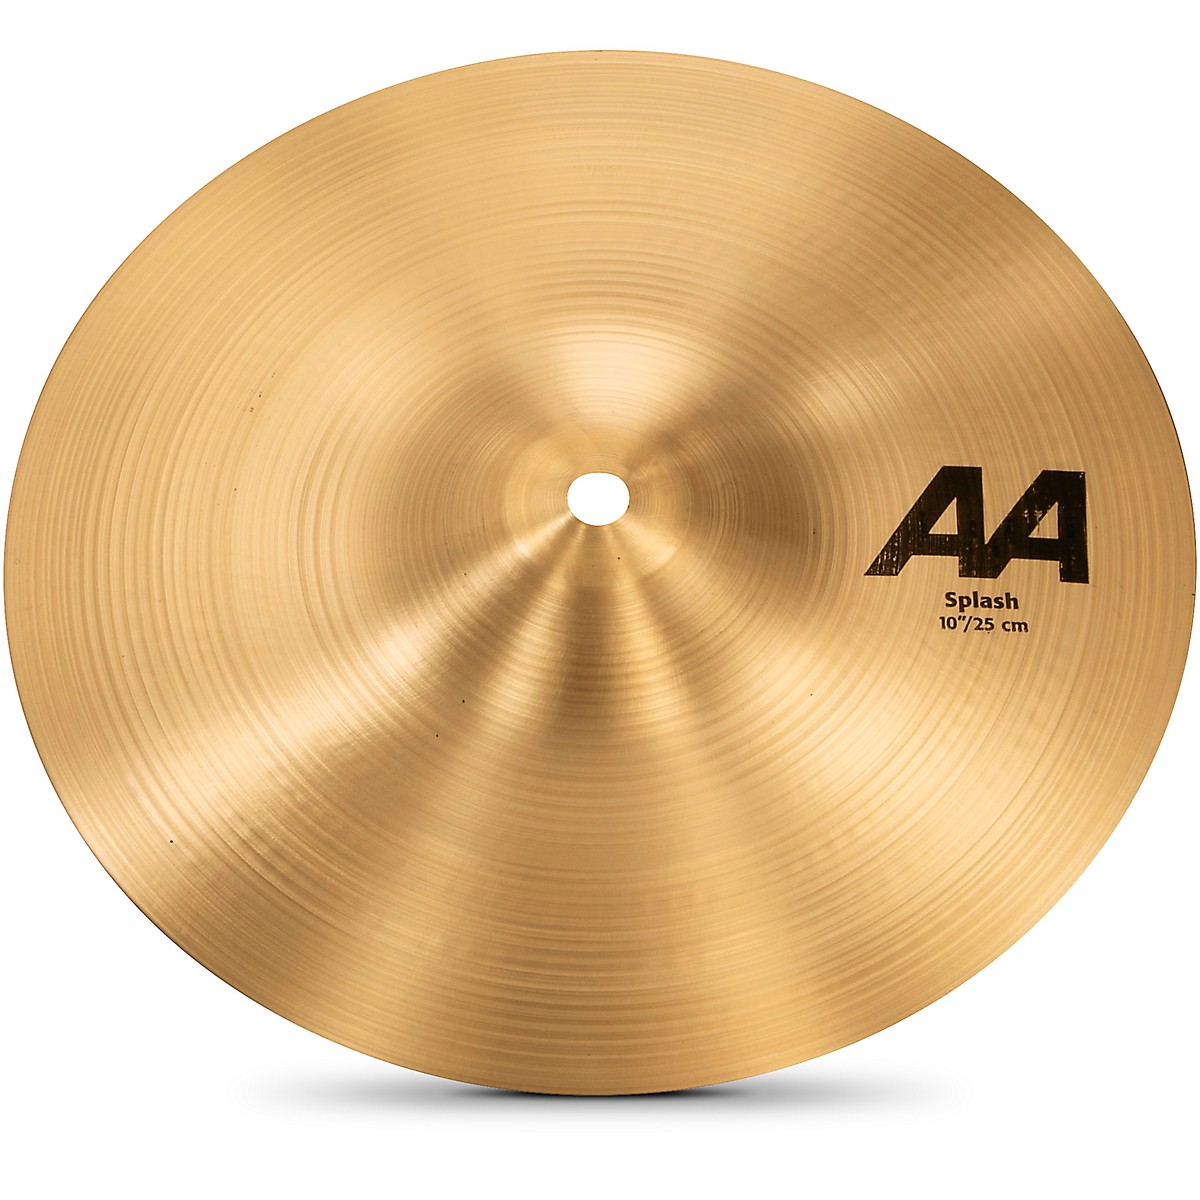 Sabian AA Series Splash Cymbal